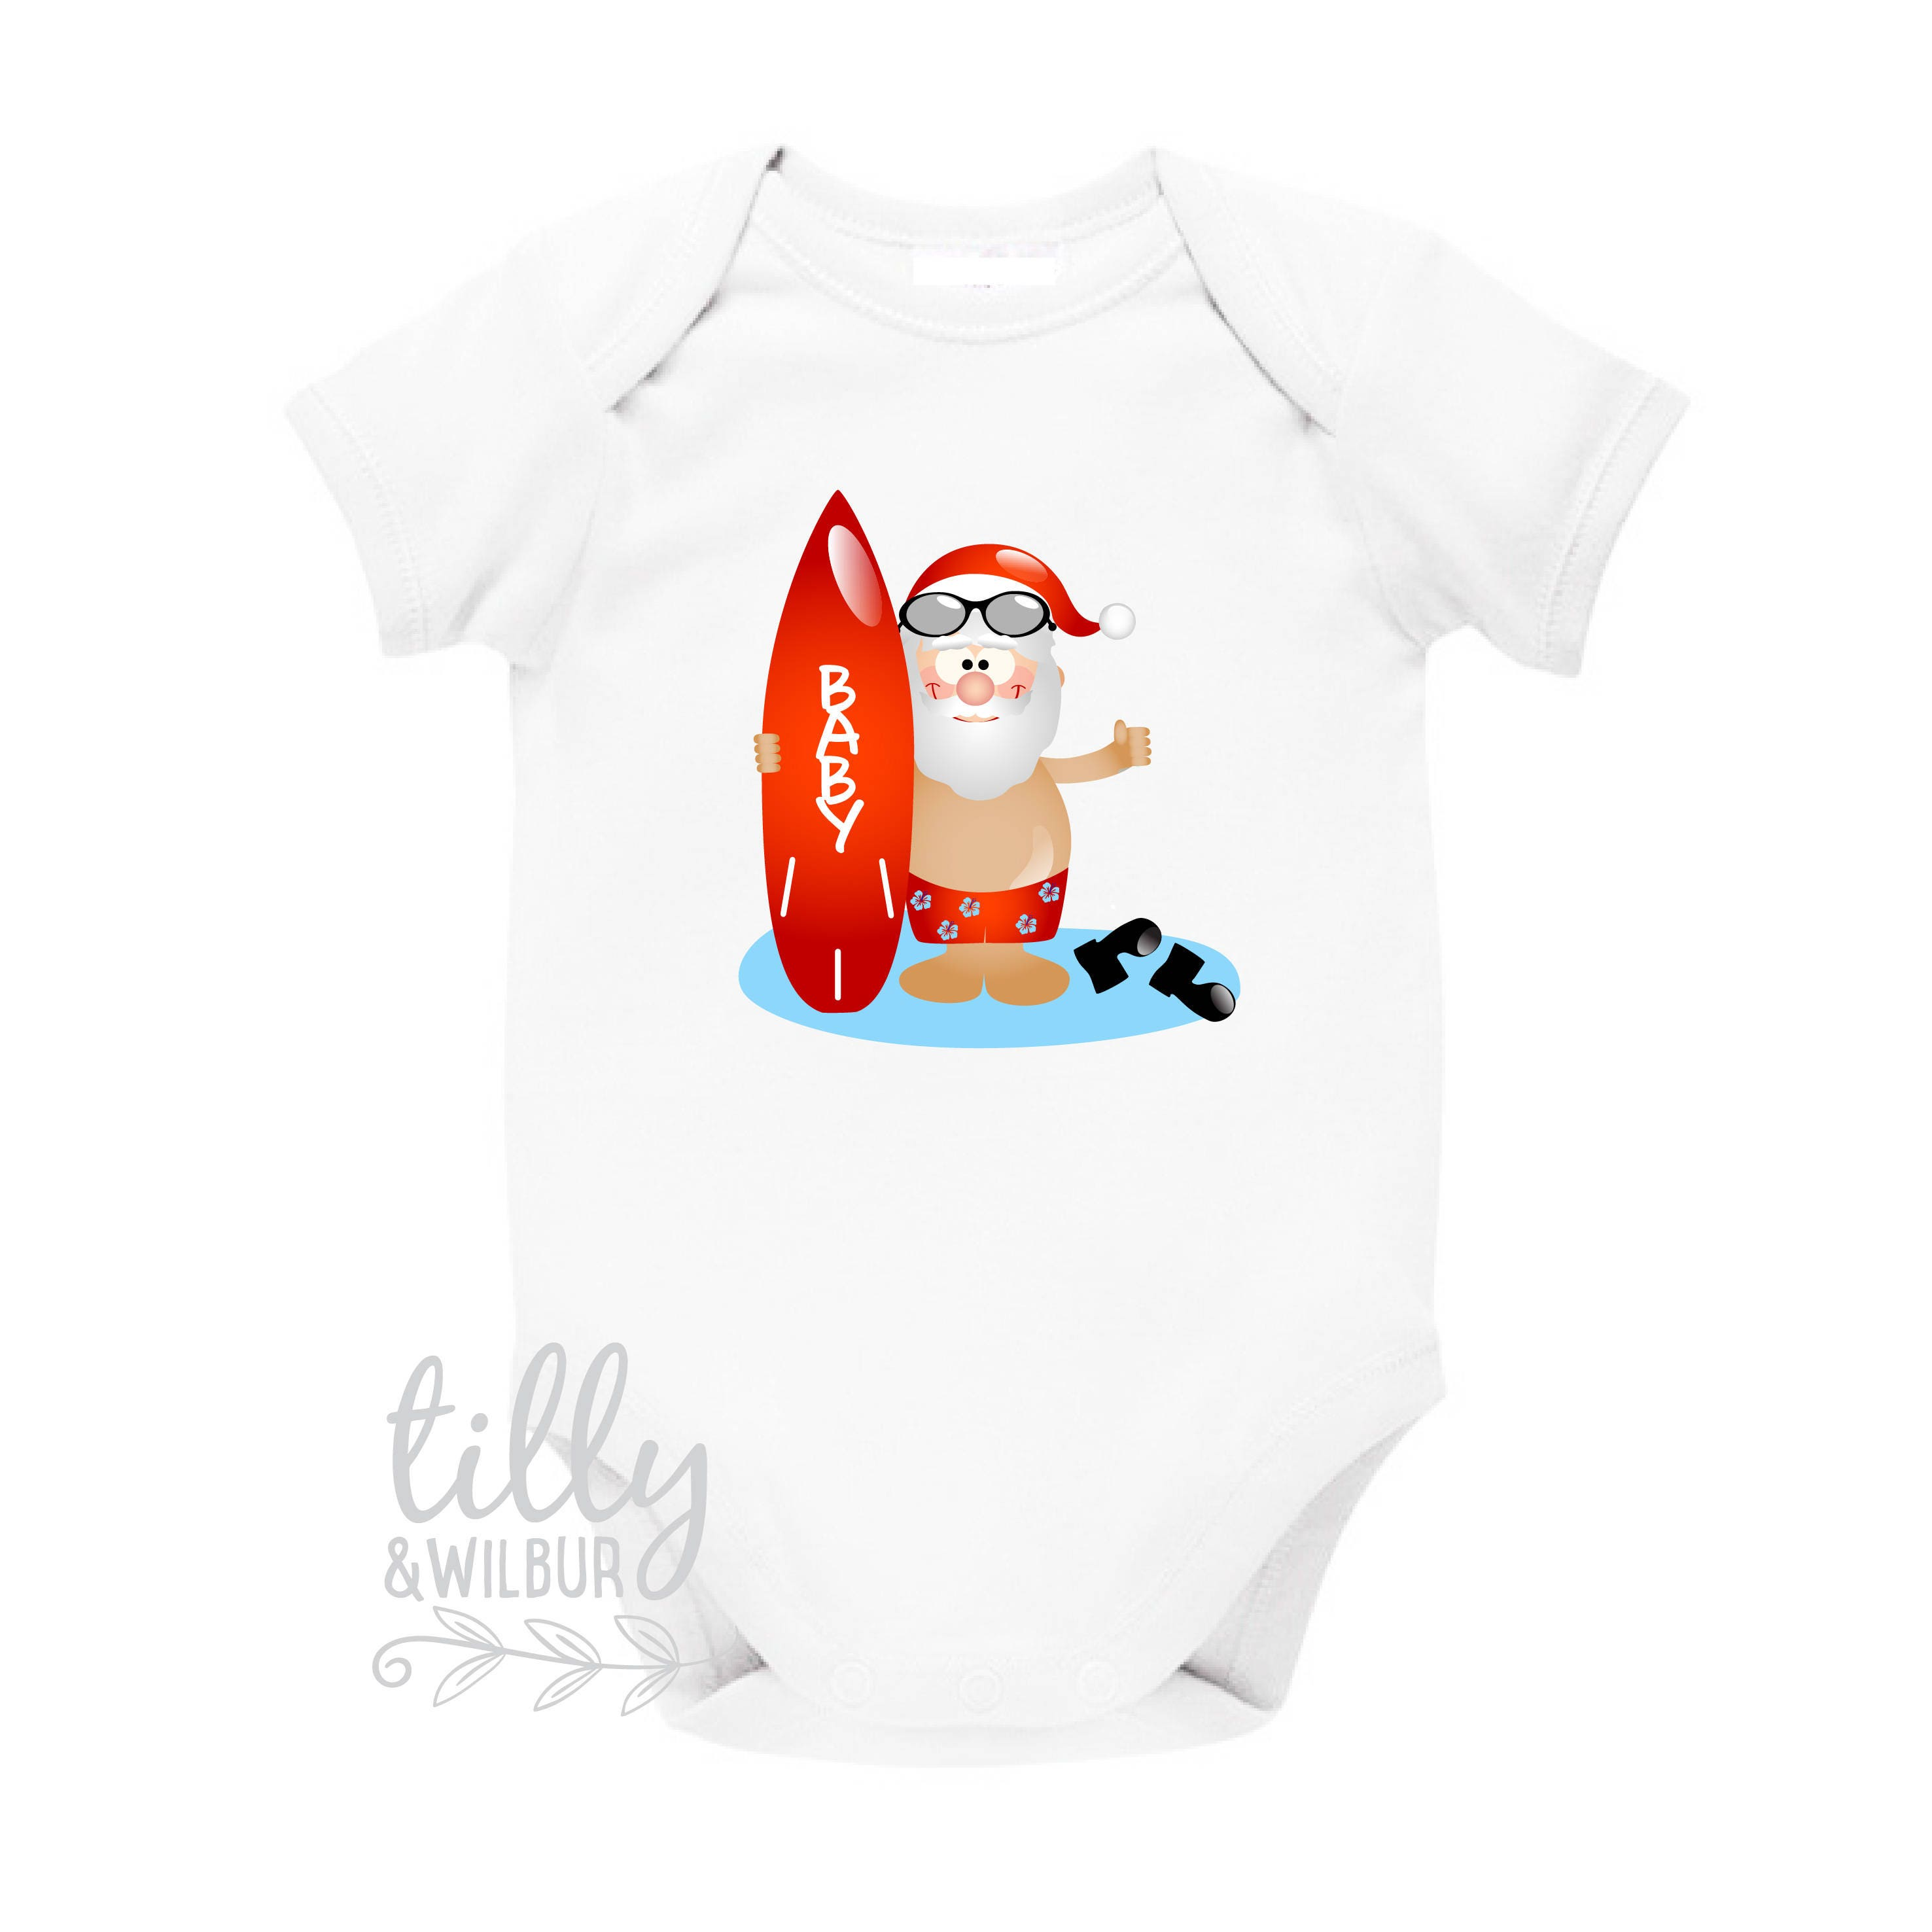 Tillywilbur personalised clothing gifts surfing santa personalised christmas baby bodysuit aussie xmas gift australian summer beach santa negle Choice Image